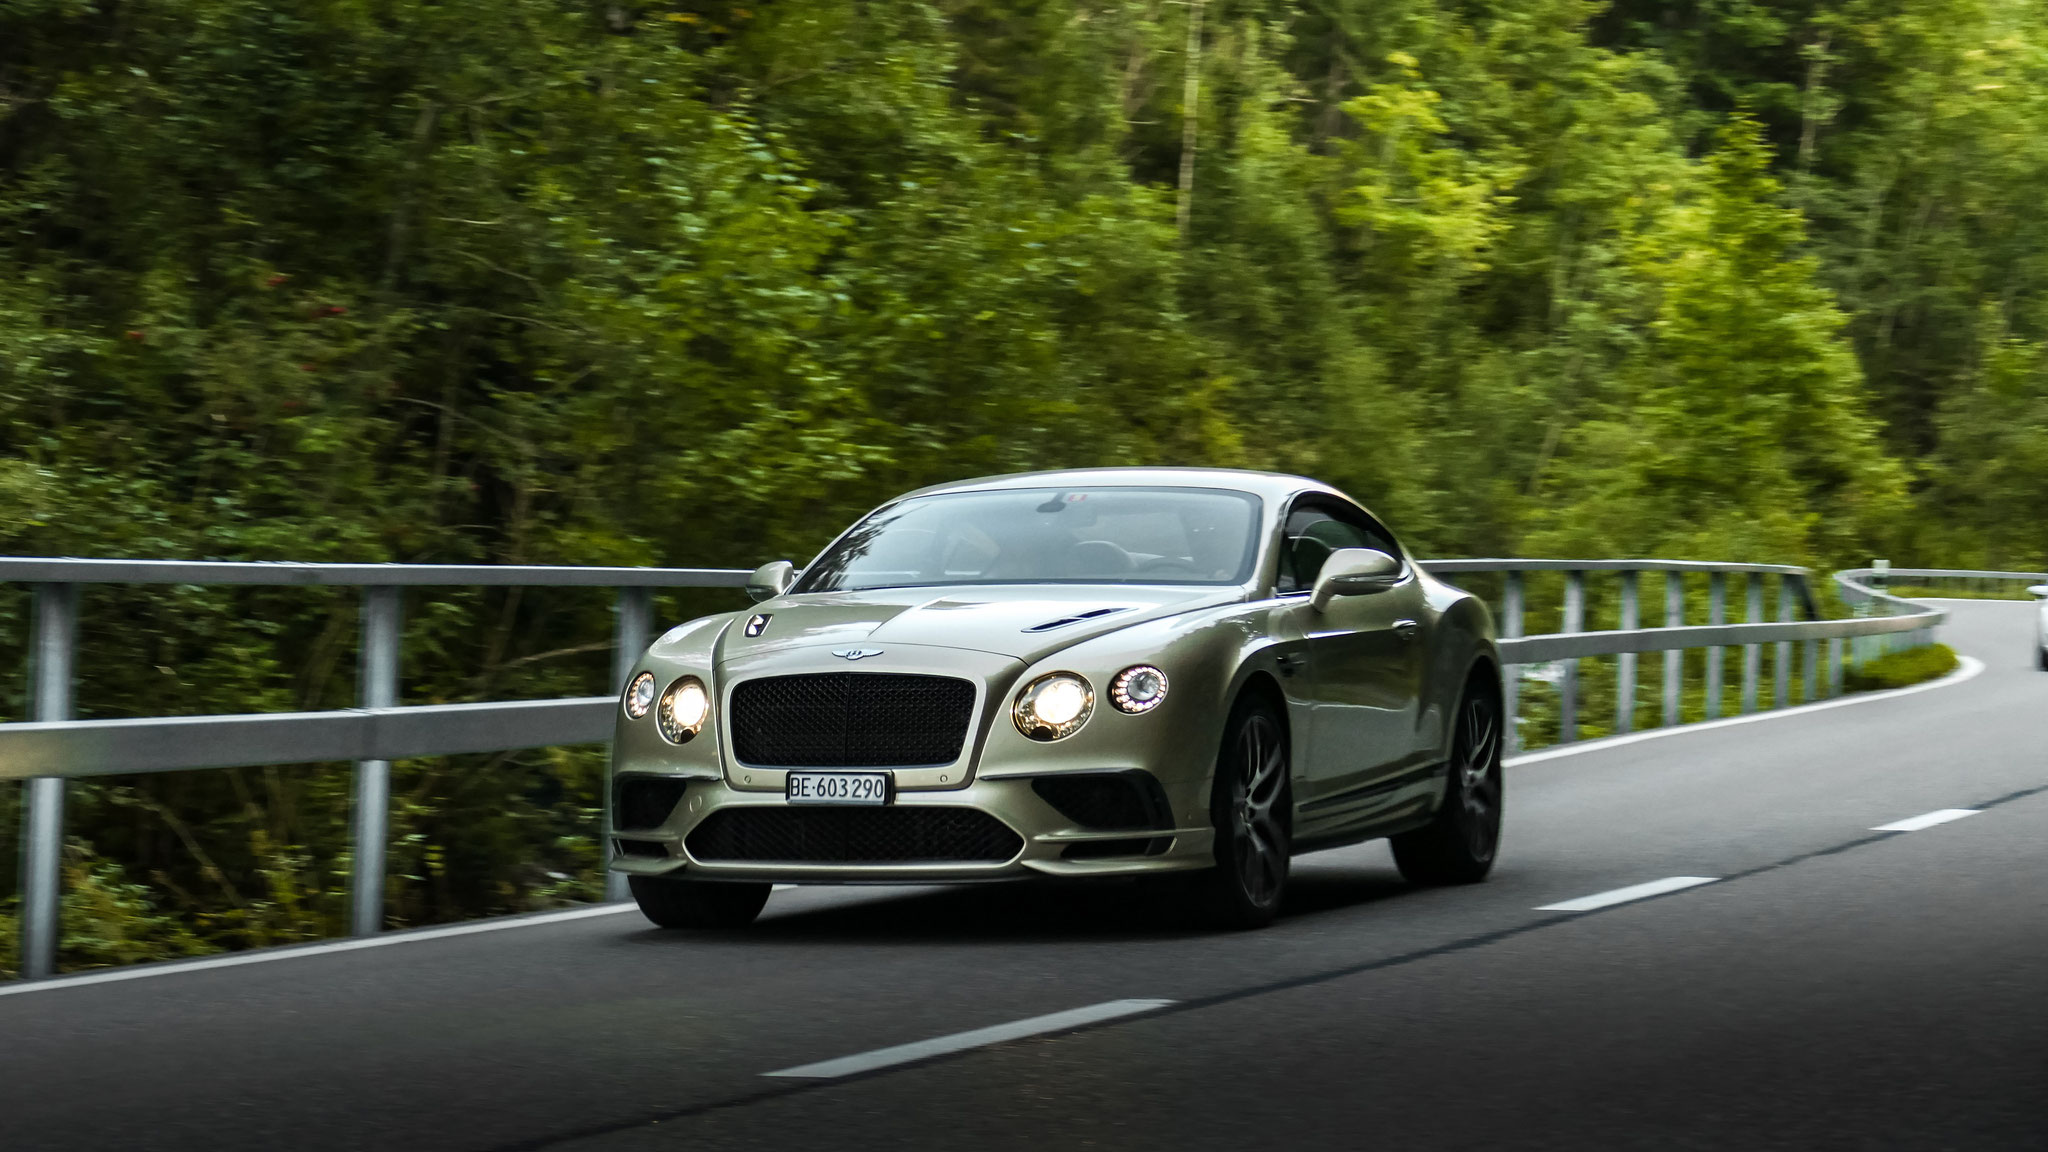 Bentley Continental GT Supersports - BE-603290 (CH)